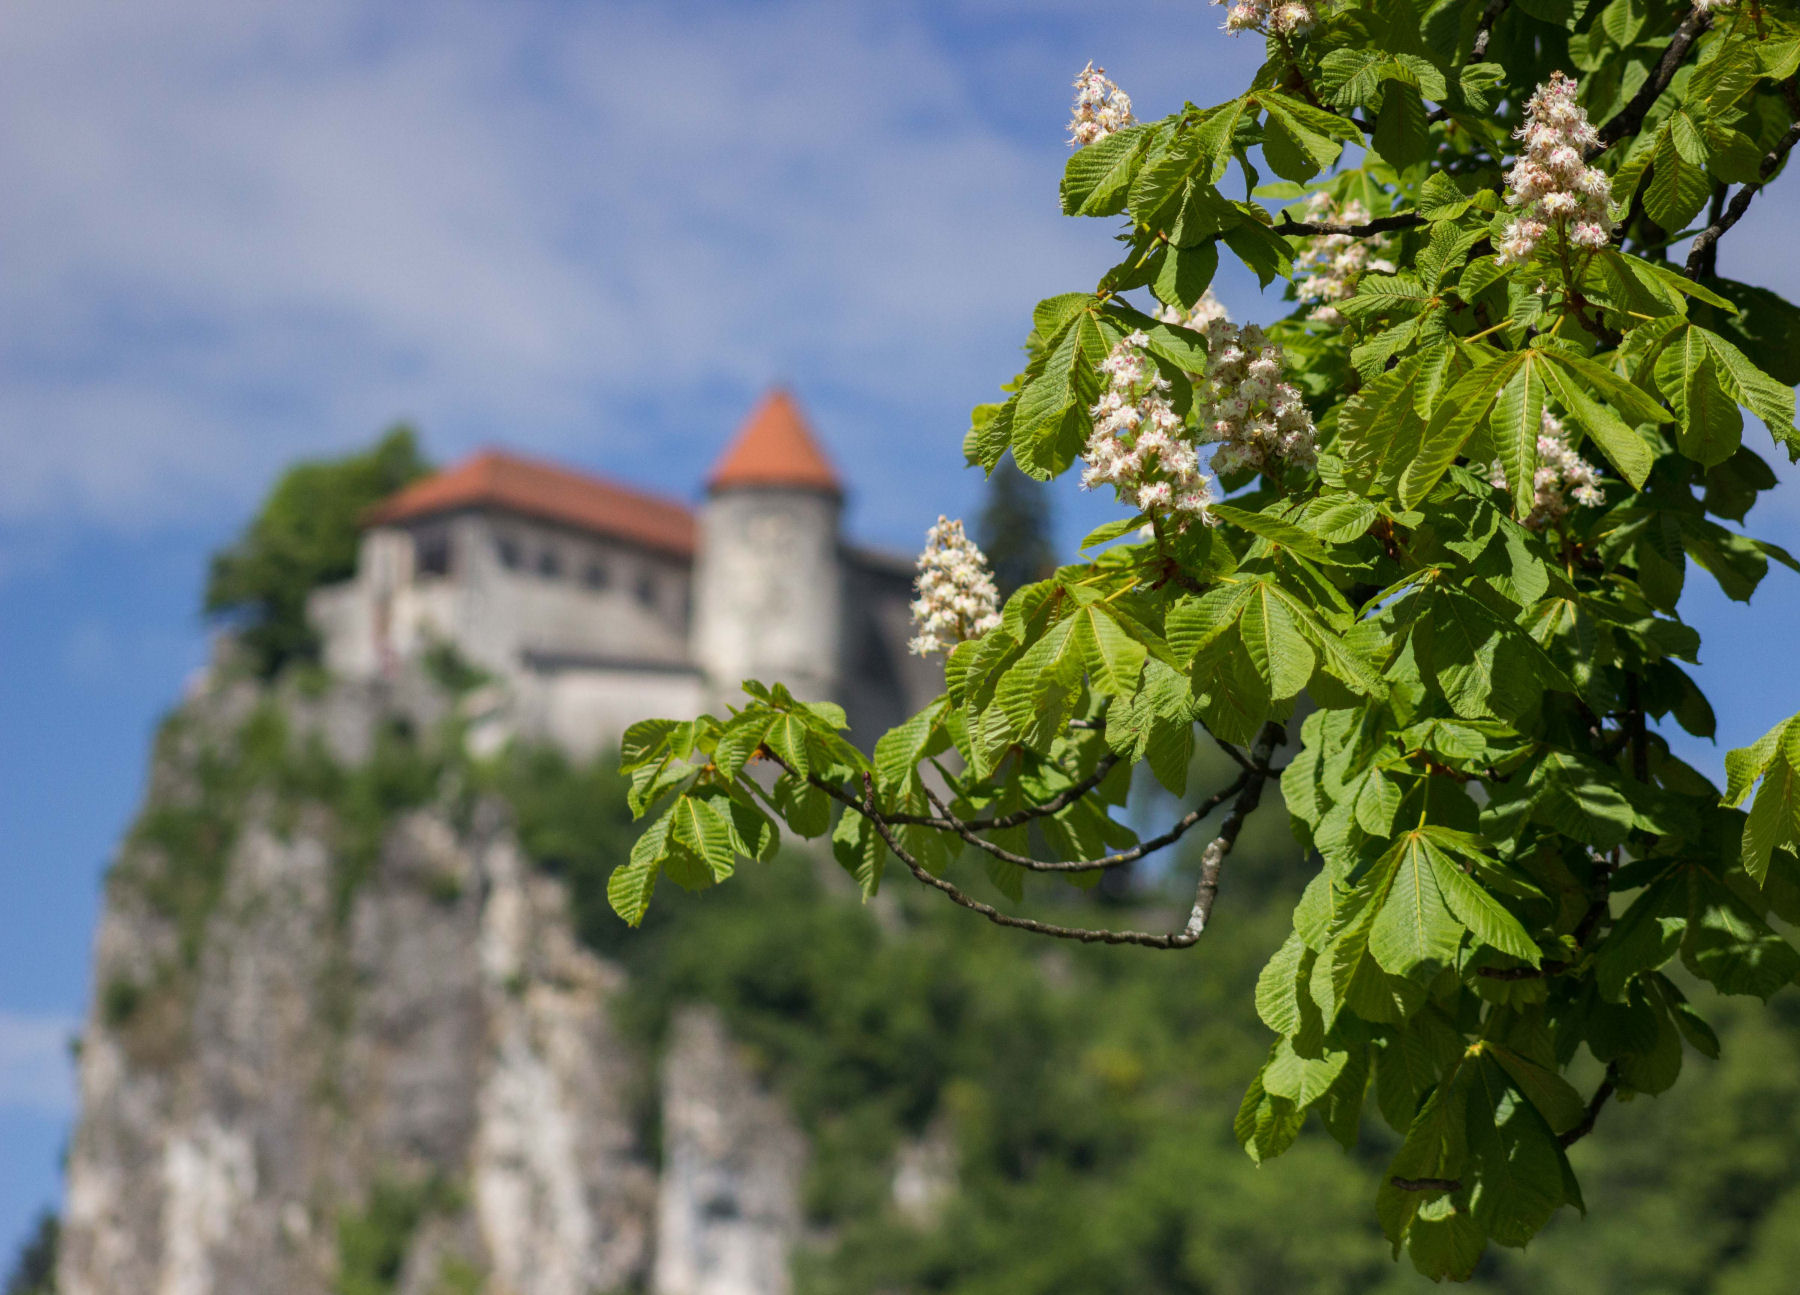 The oldest castle in Slovenia stands on a sheer cliff above Lake Bled